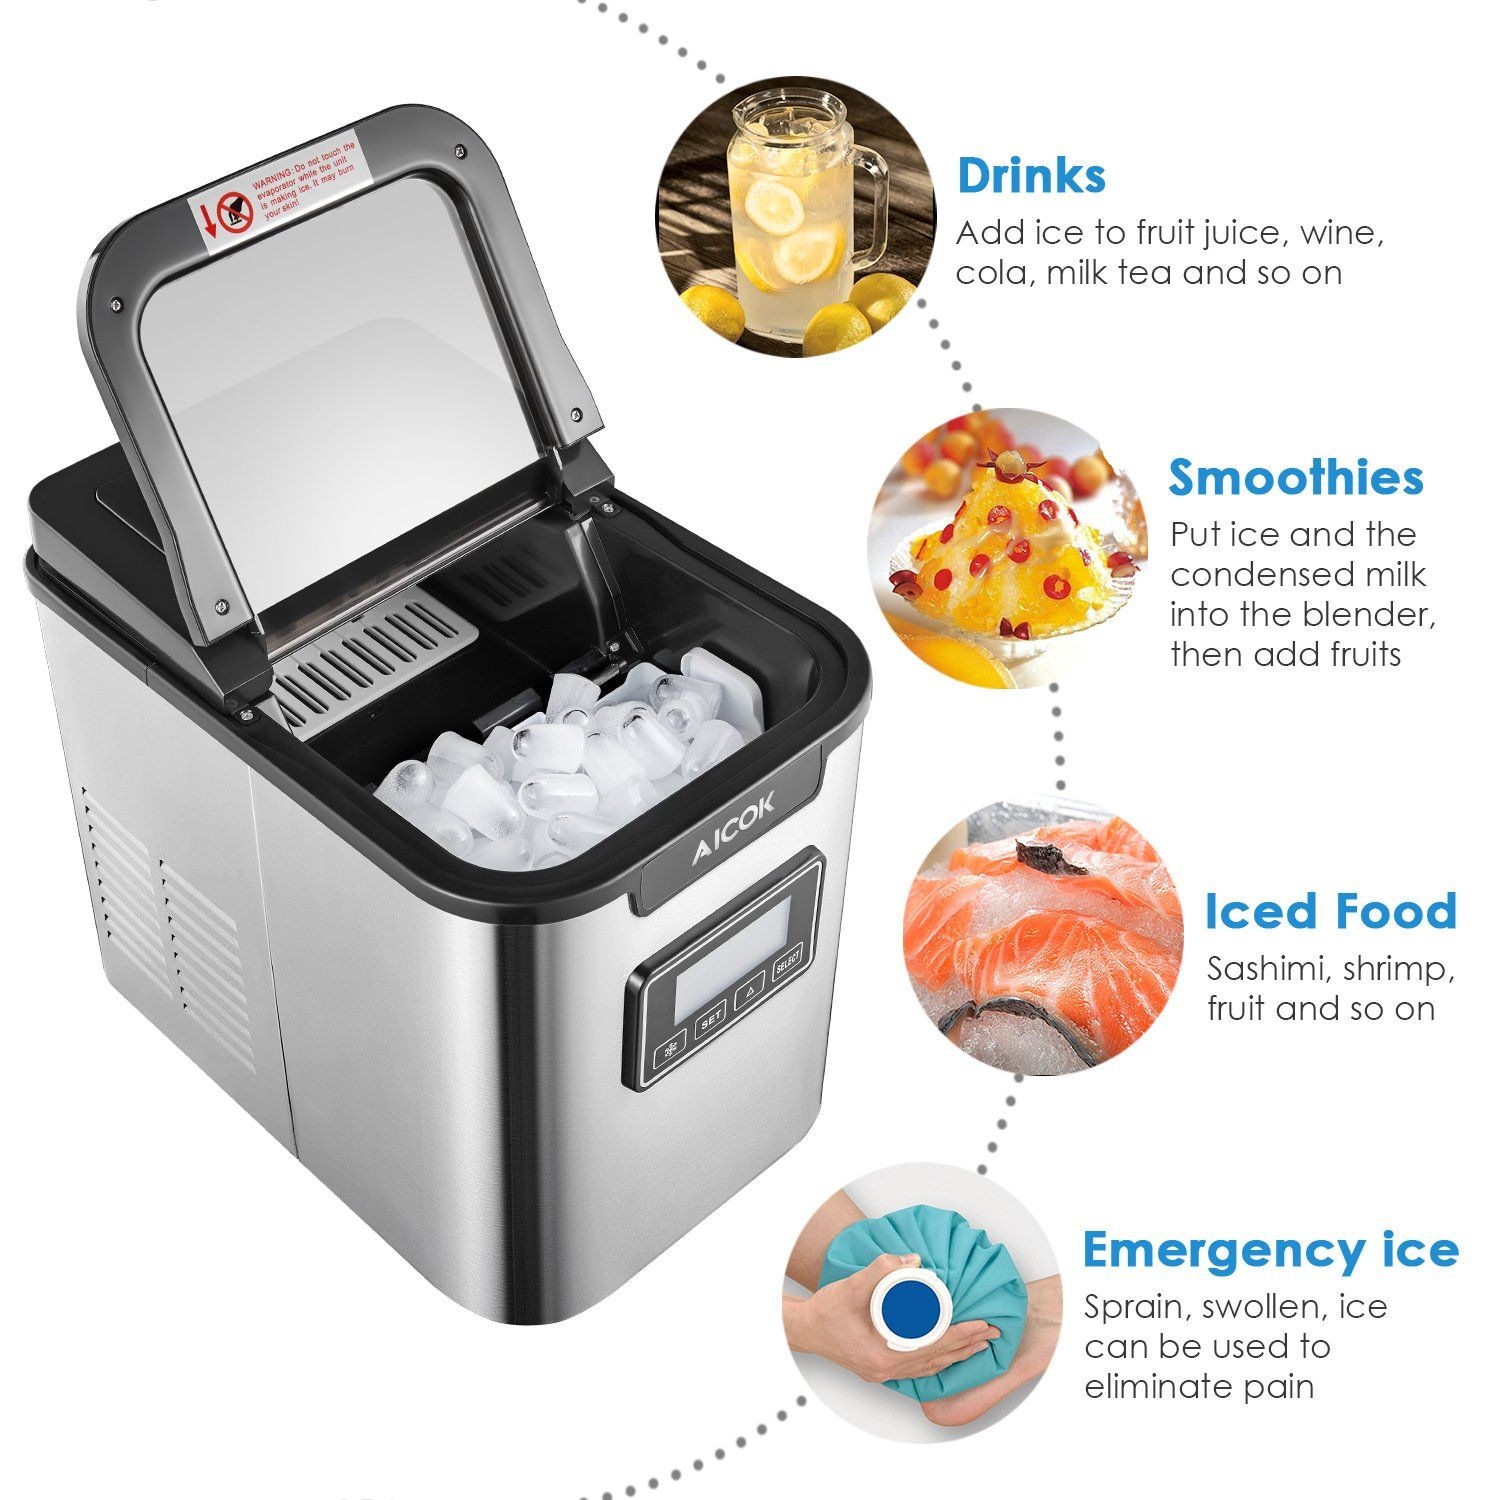 Aicok Portable Ice Maker Ice Cubes Ready In 6 Minutes Counter Top